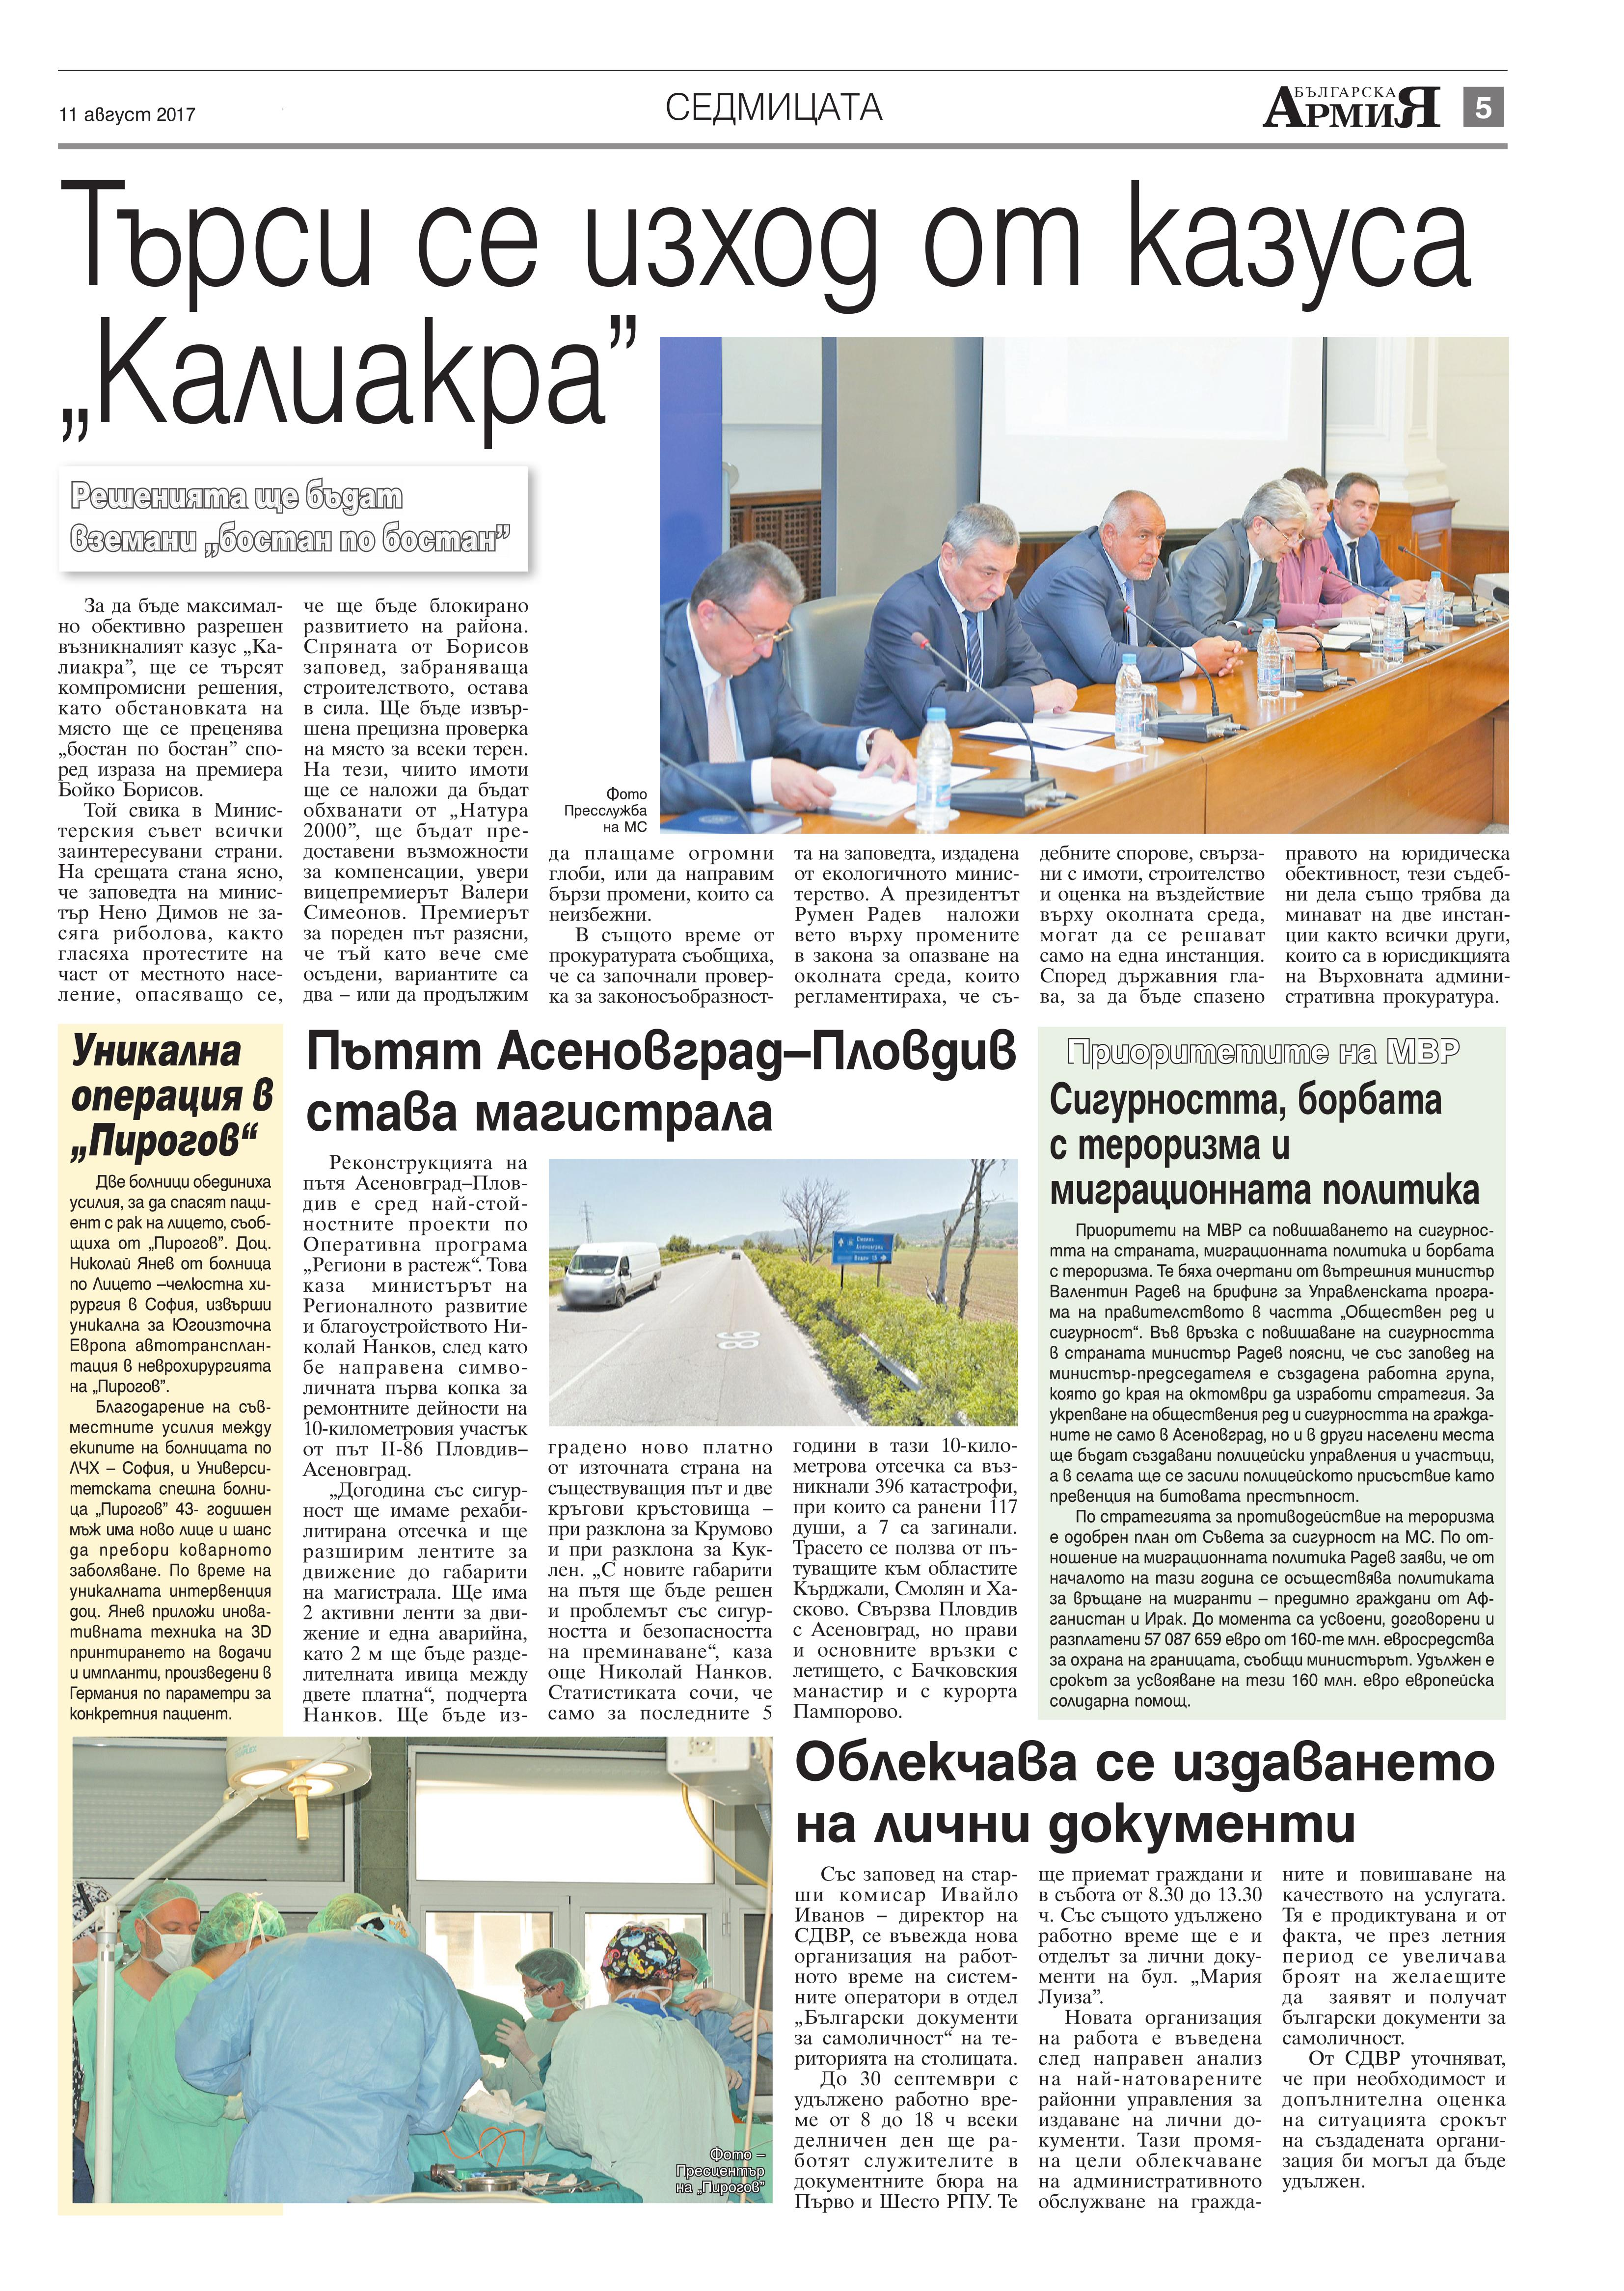 http://armymedia.bg/wp-content/uploads/2015/06/05.page1_-28.jpg